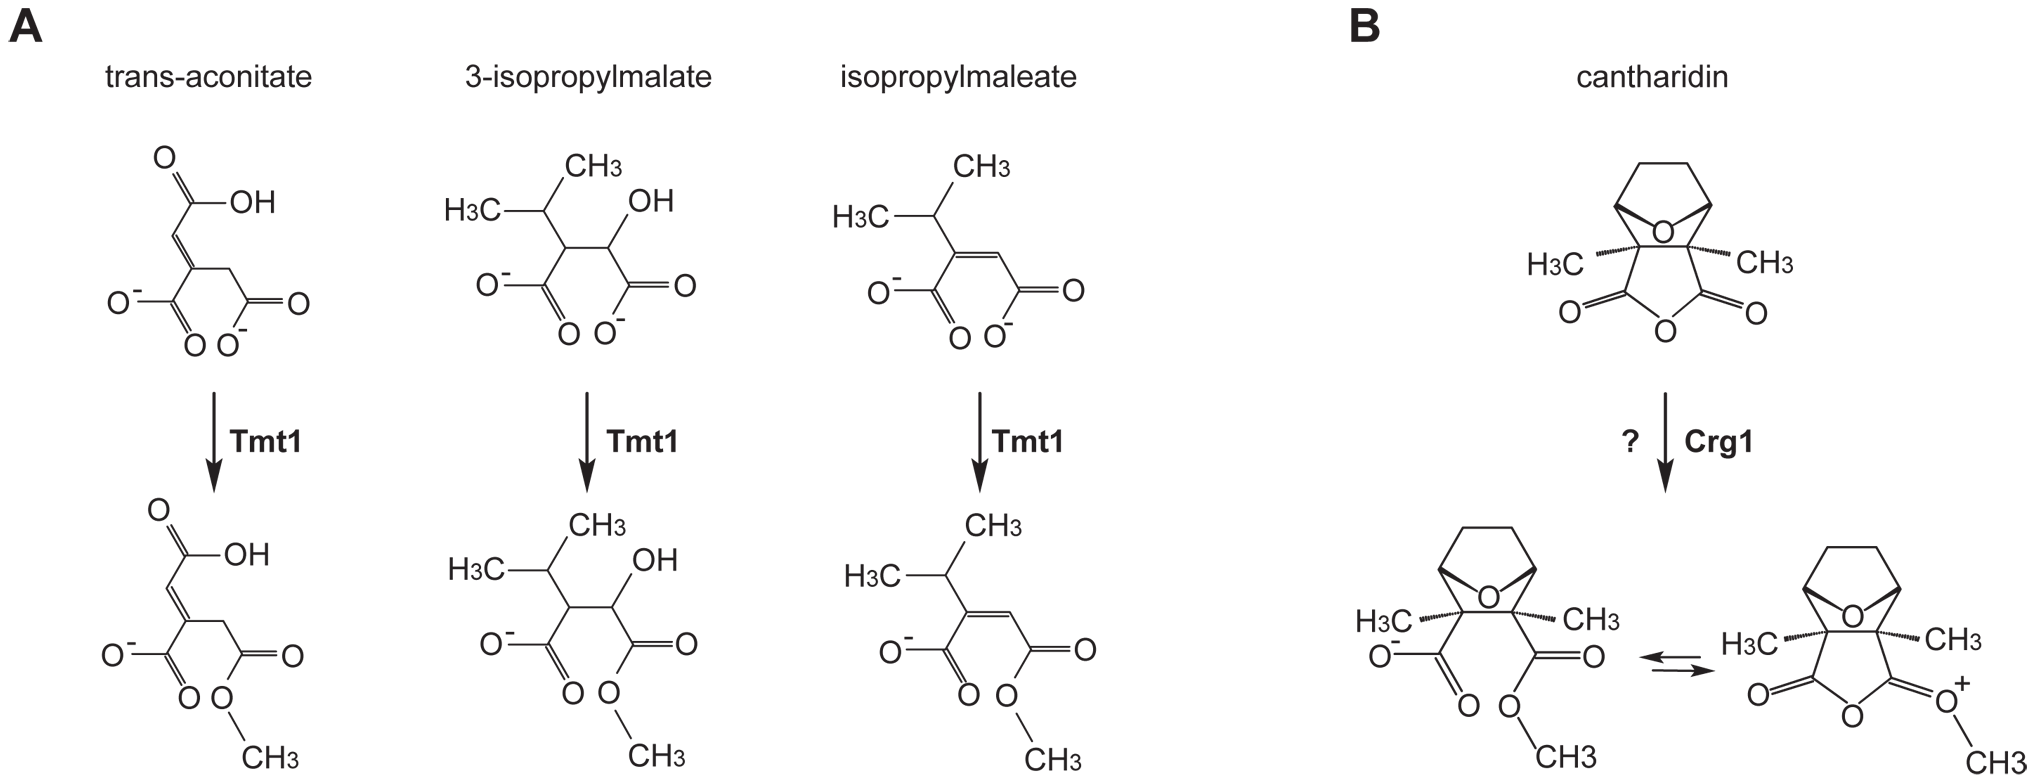 Small molecule methyltransferase TMT1 is a sequence homolog of Crg1.